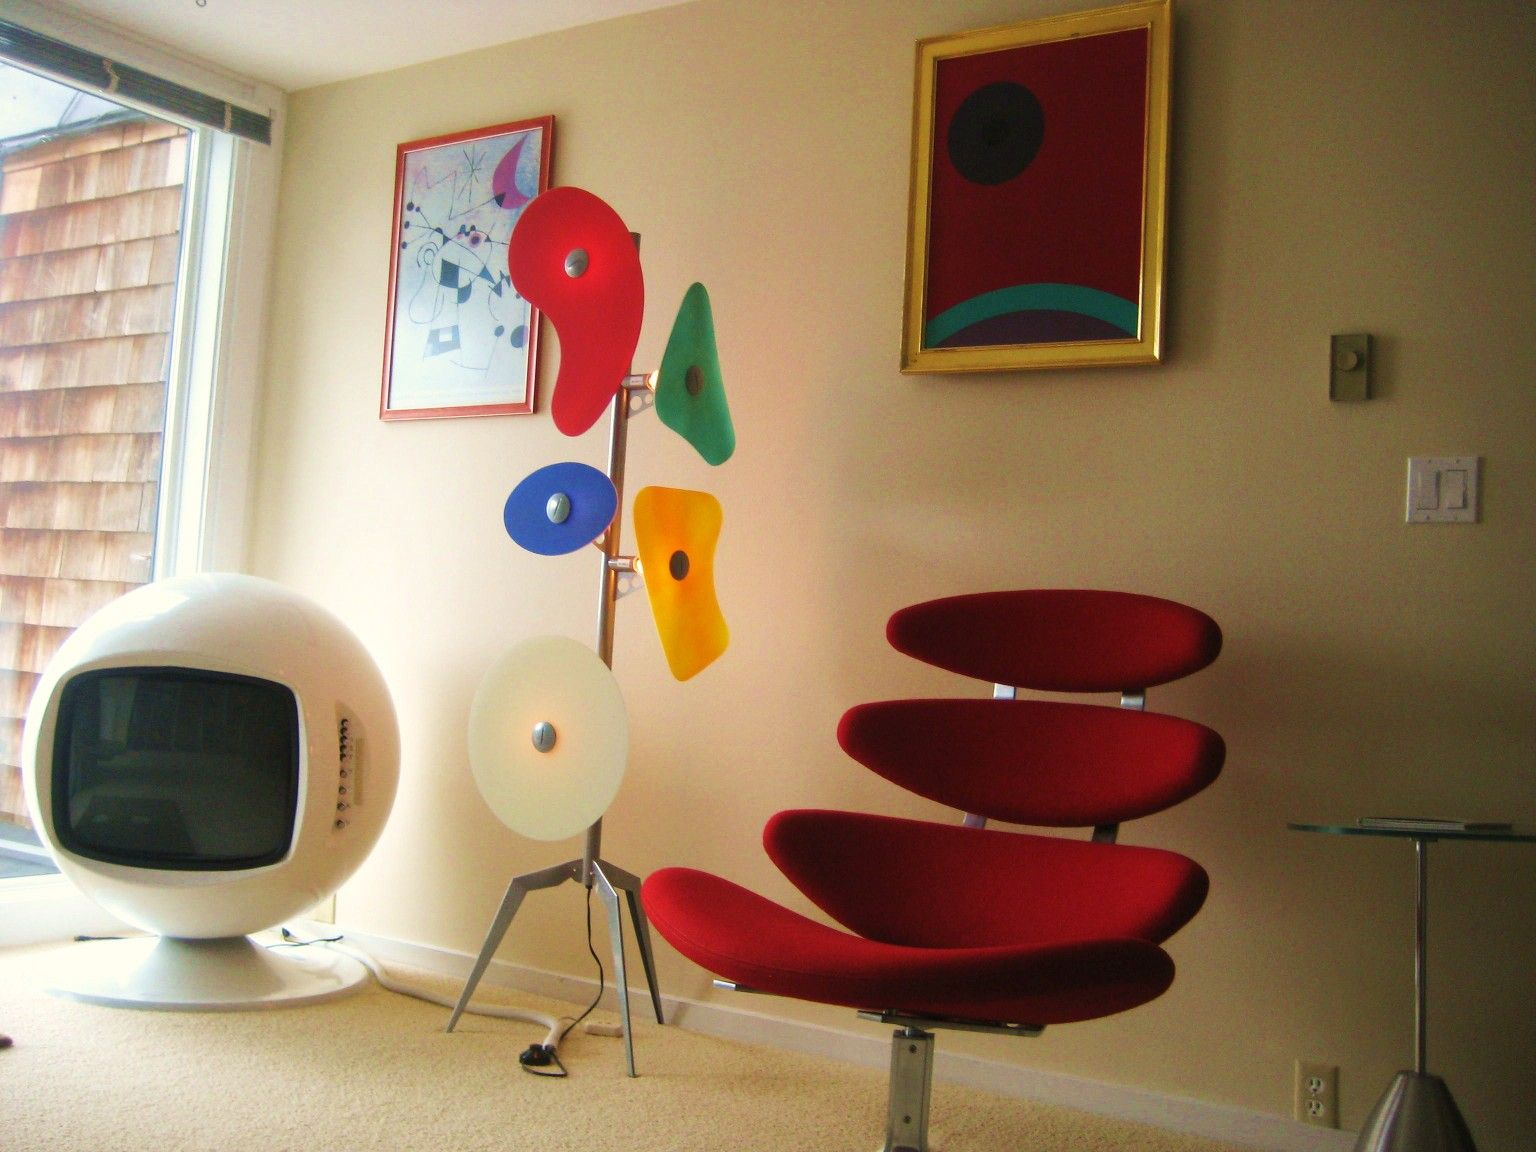 Space Age Design.Tim Apicella Space Age Design Museum 1961 Corona Chair